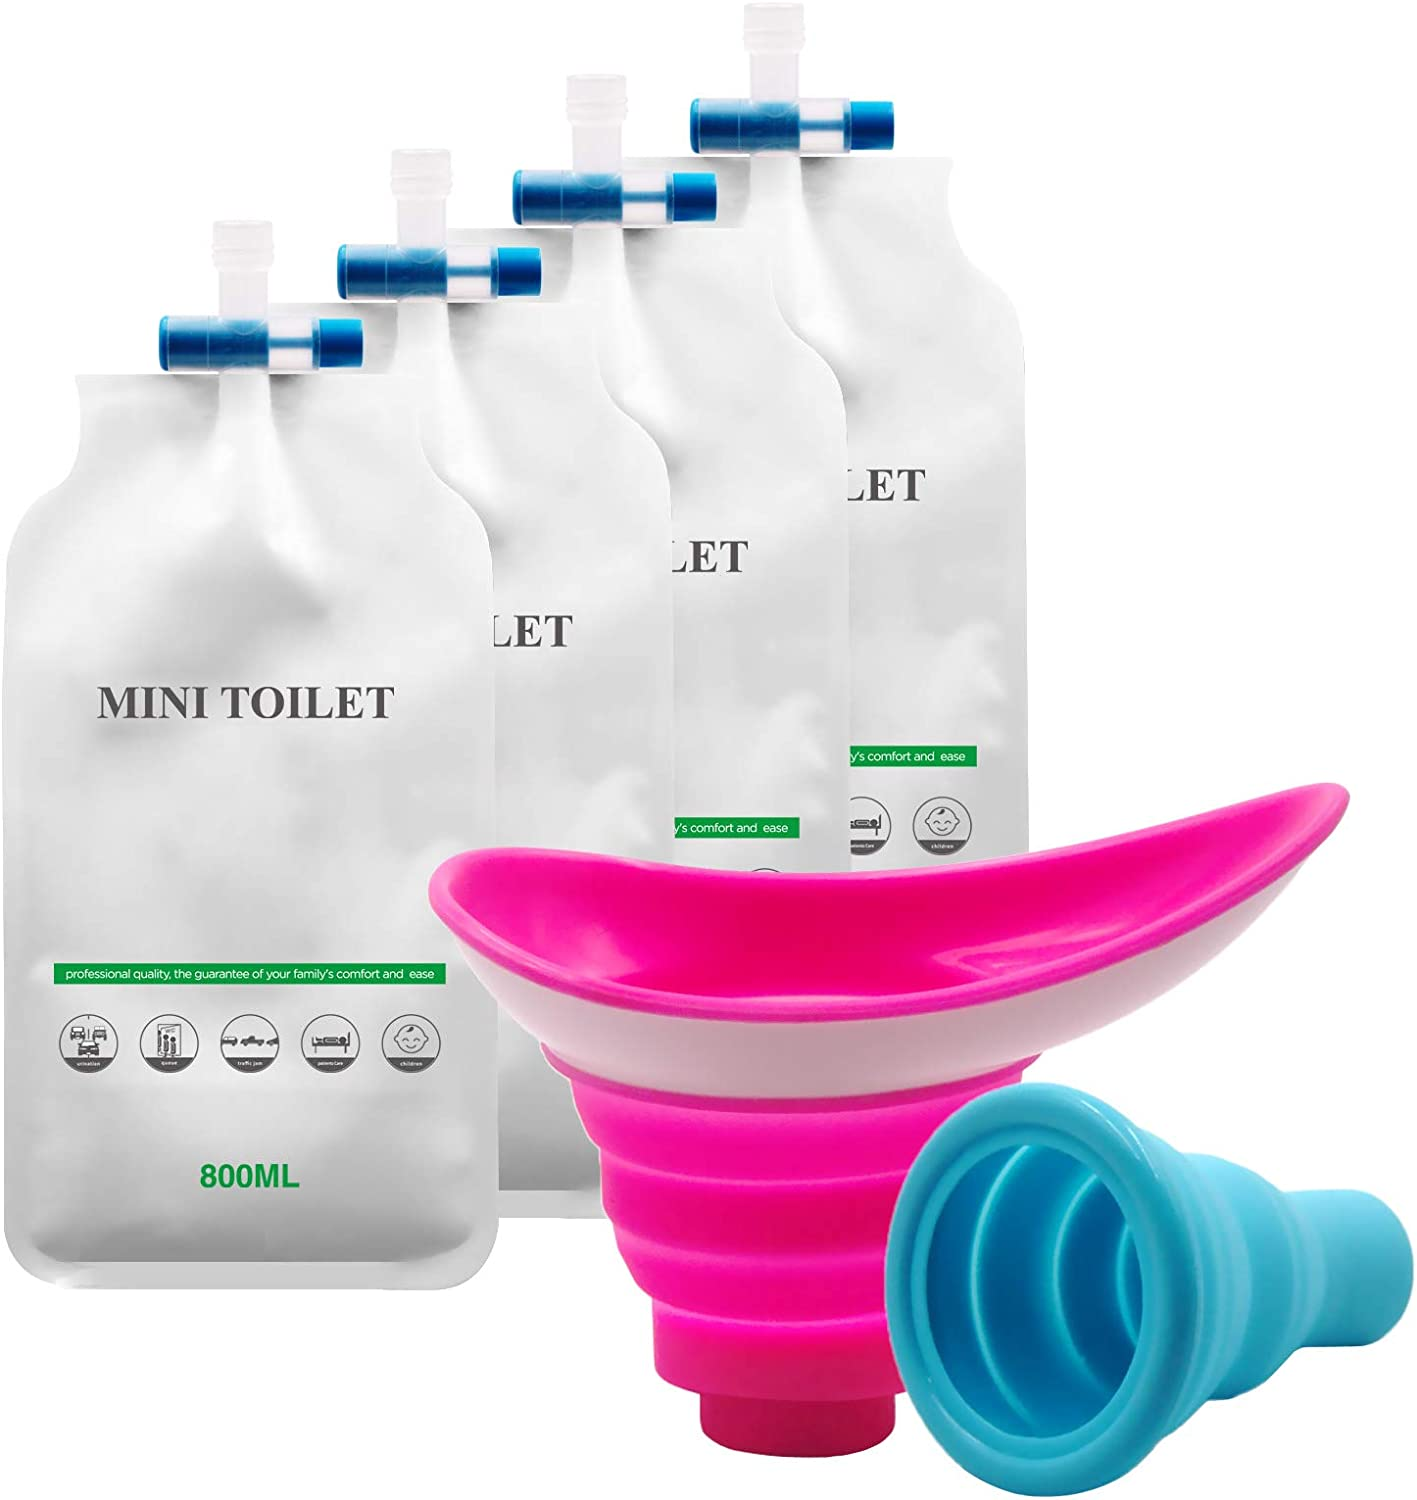 YYAN Urinal Device Female Male Urination Bag Silicone Foolproof Shrinkable Portable Women Man Pee Funnel